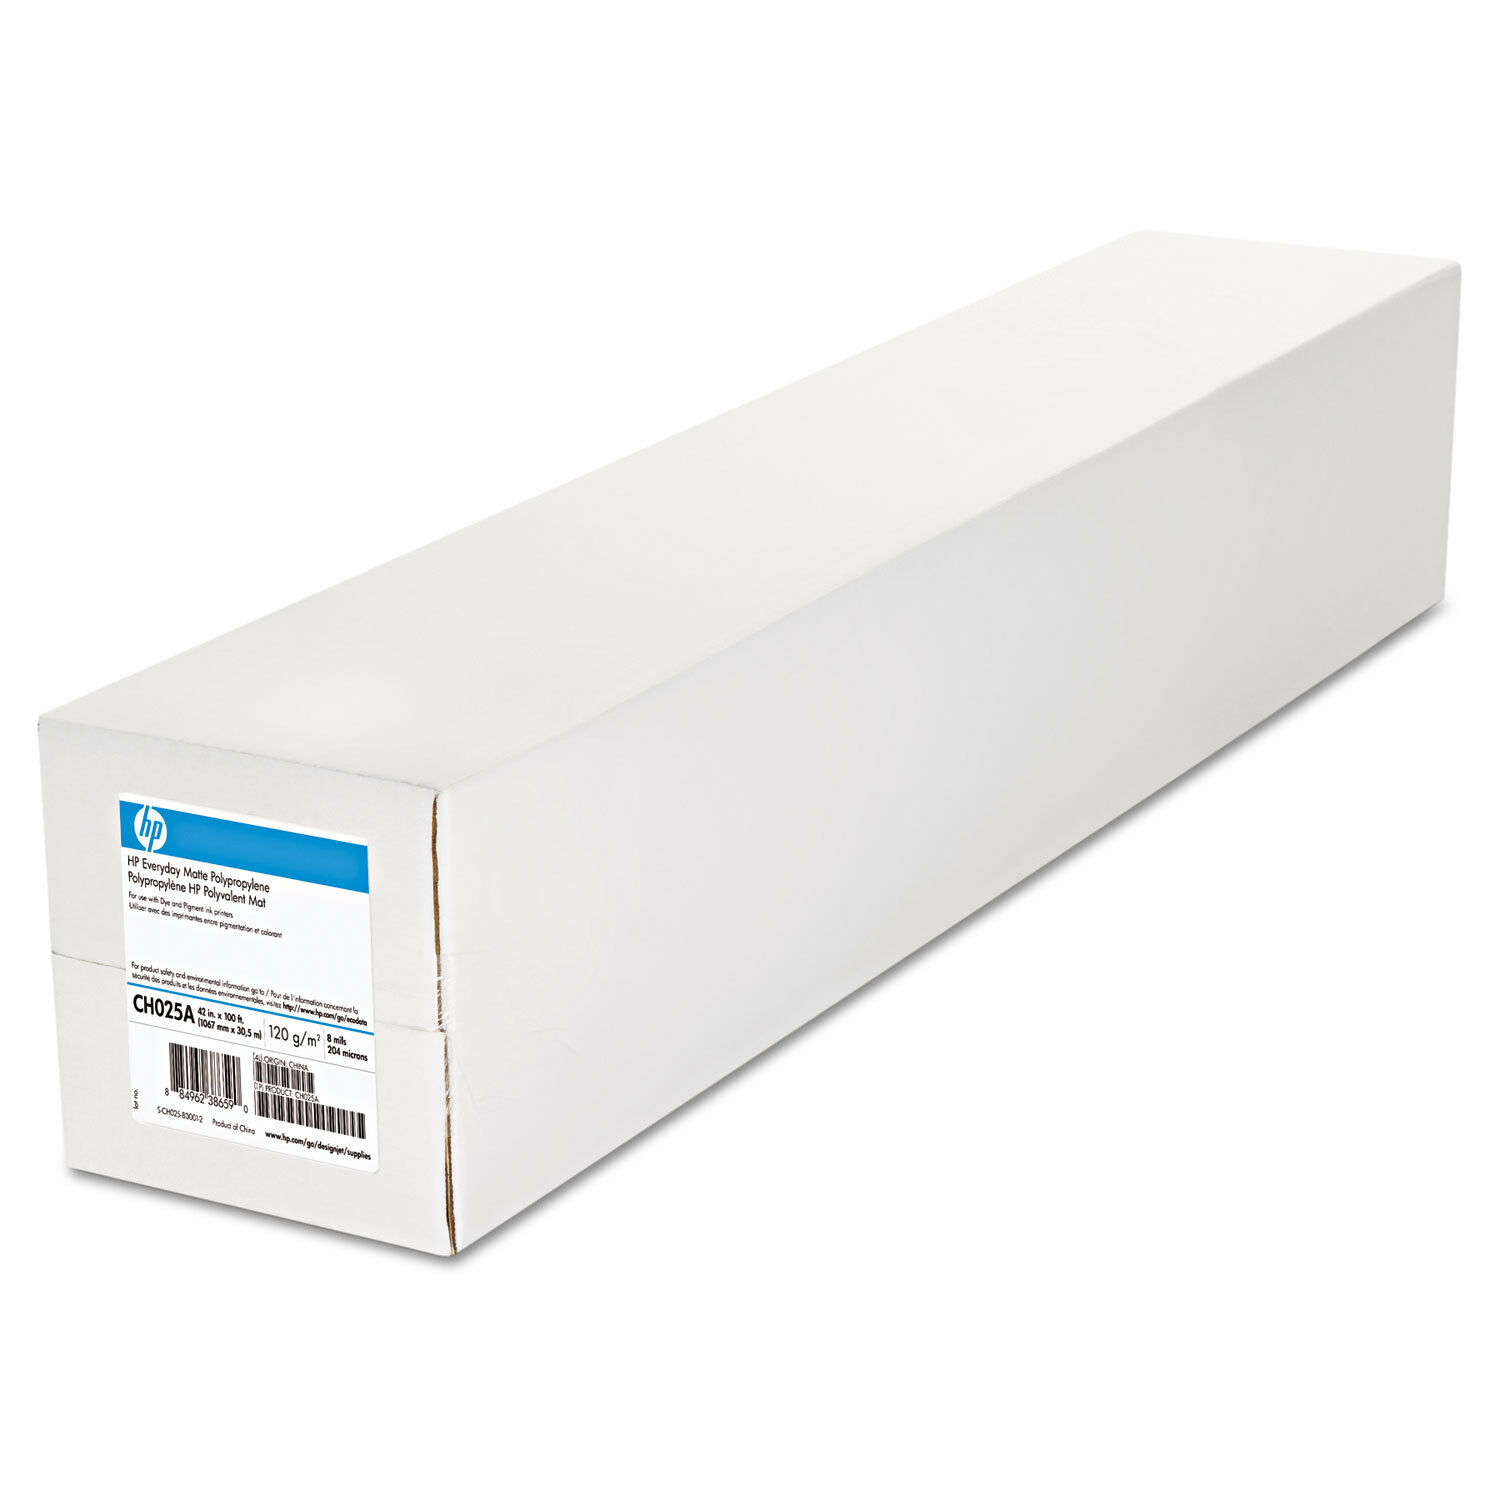 H-P Media Everyday Matte Poly 42X100 CH025A